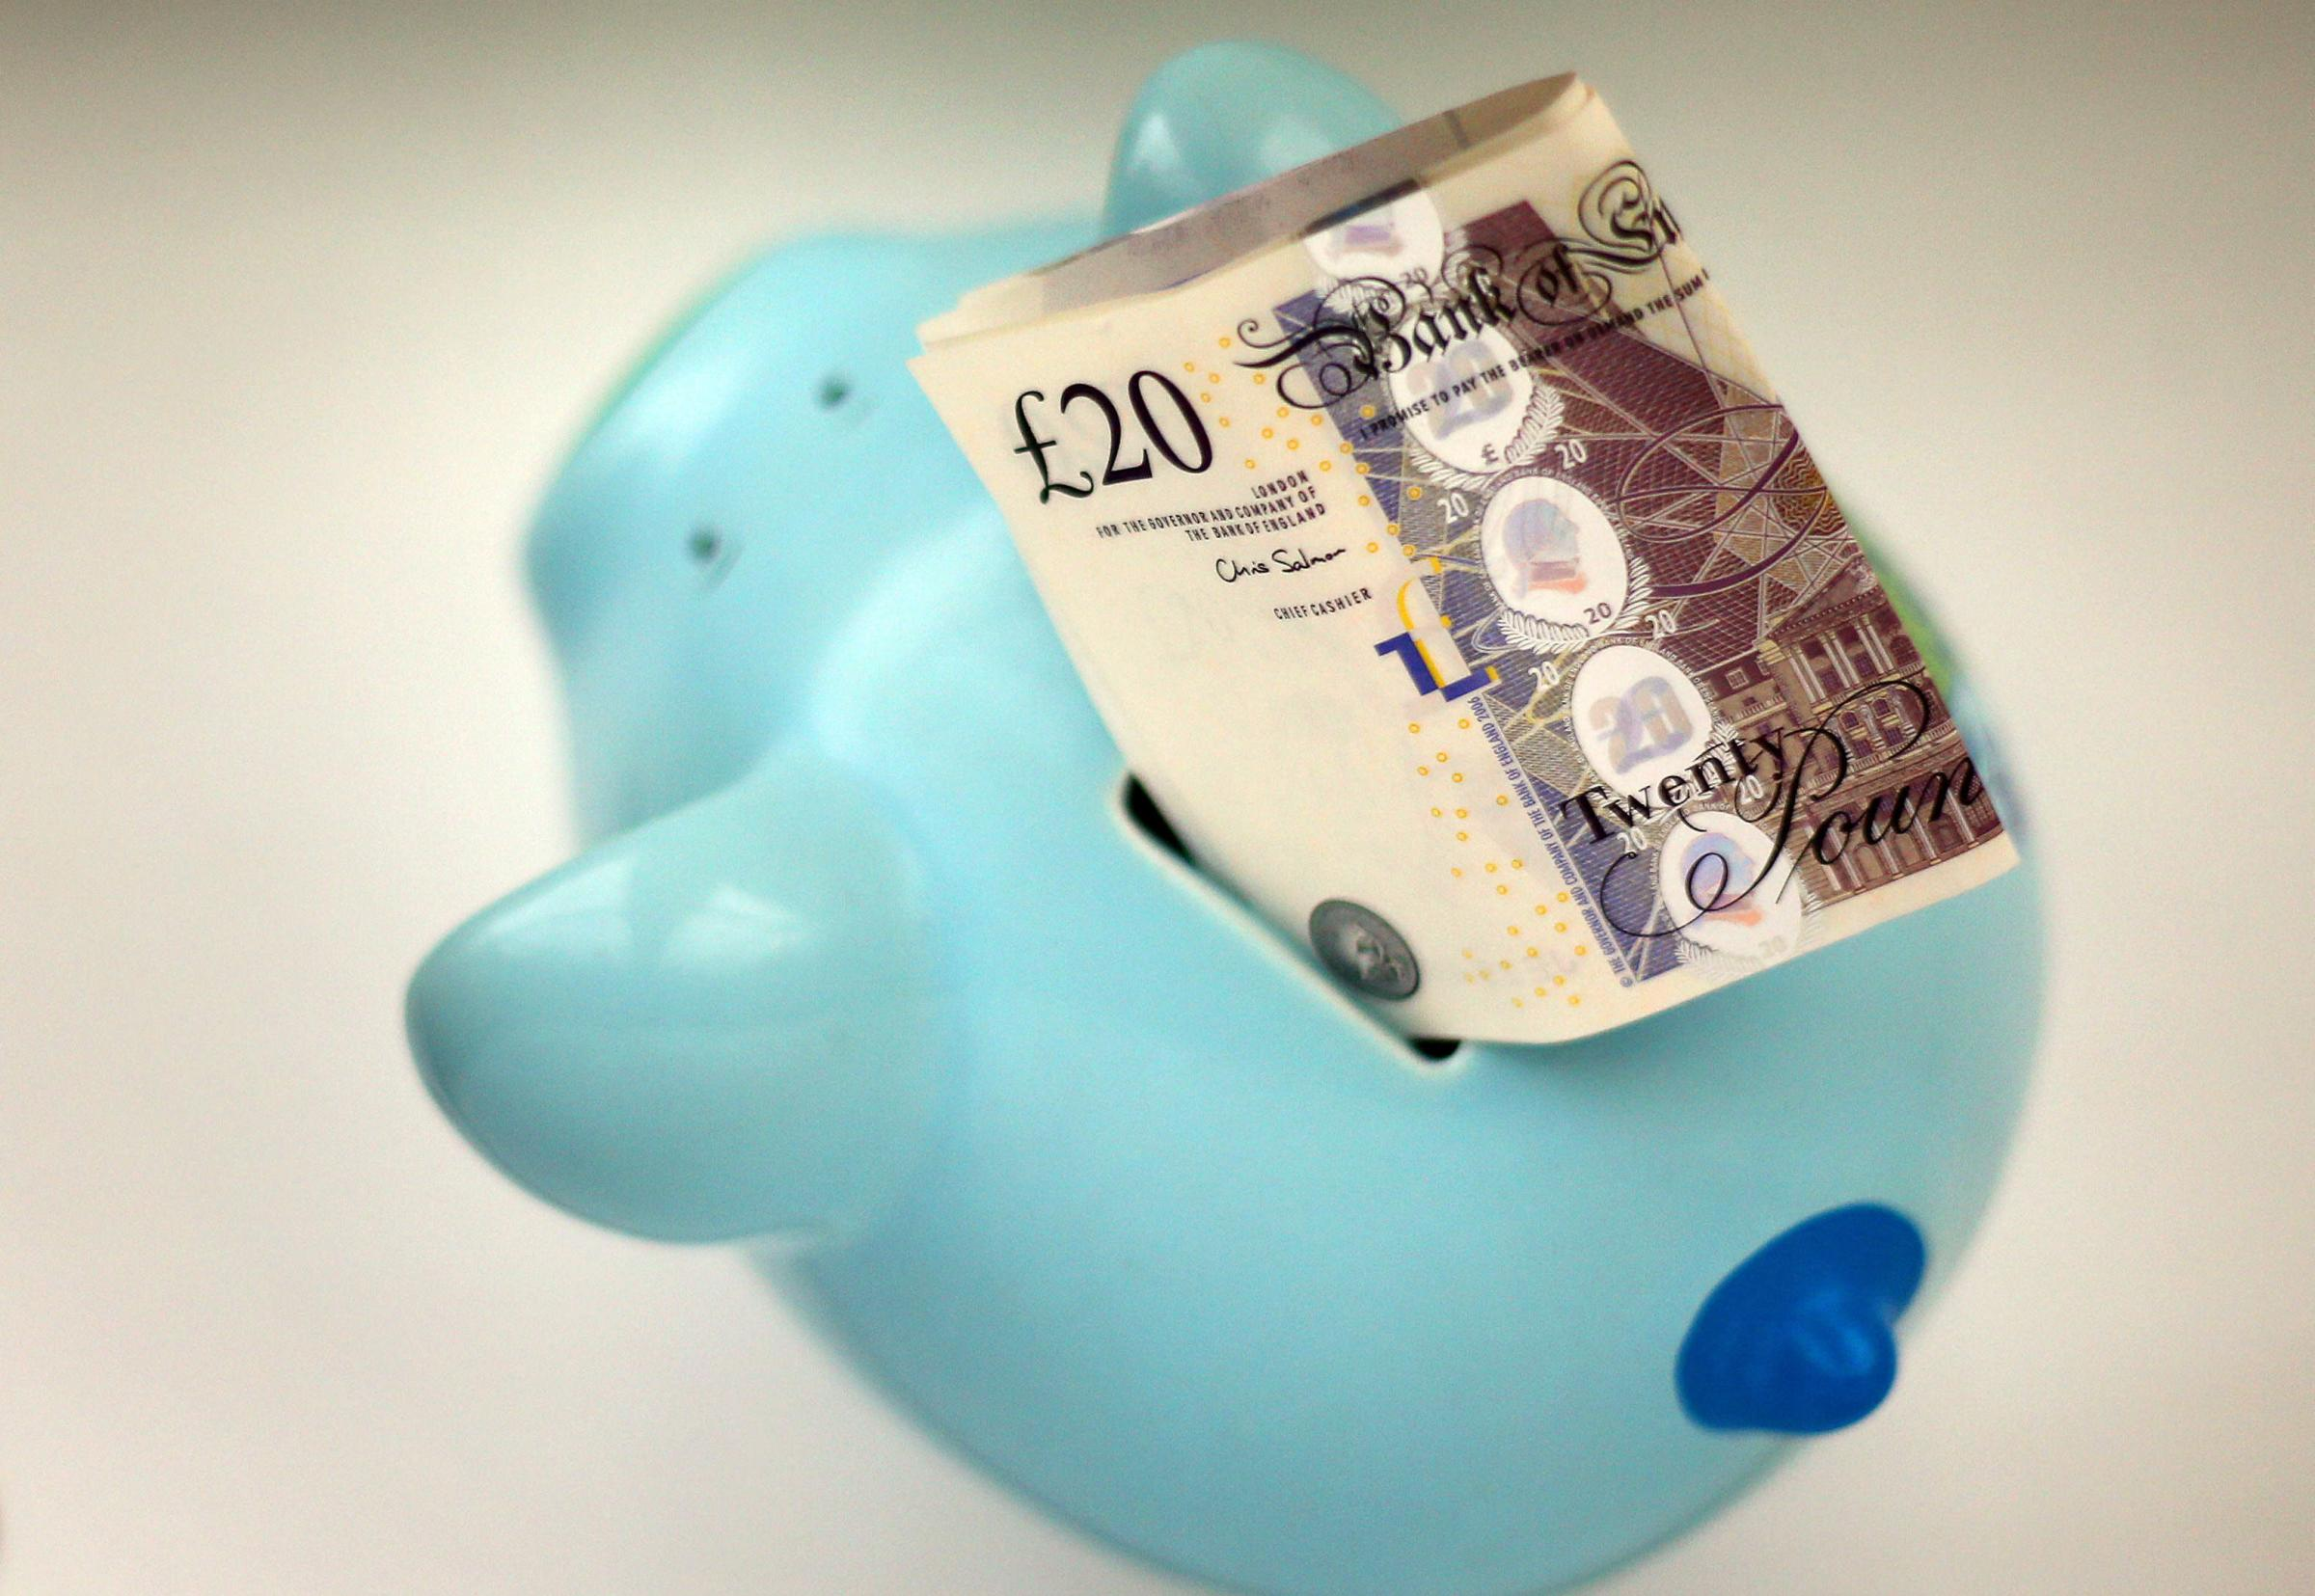 Three-quarters of savers believe pension companies should take note of ethical concerns